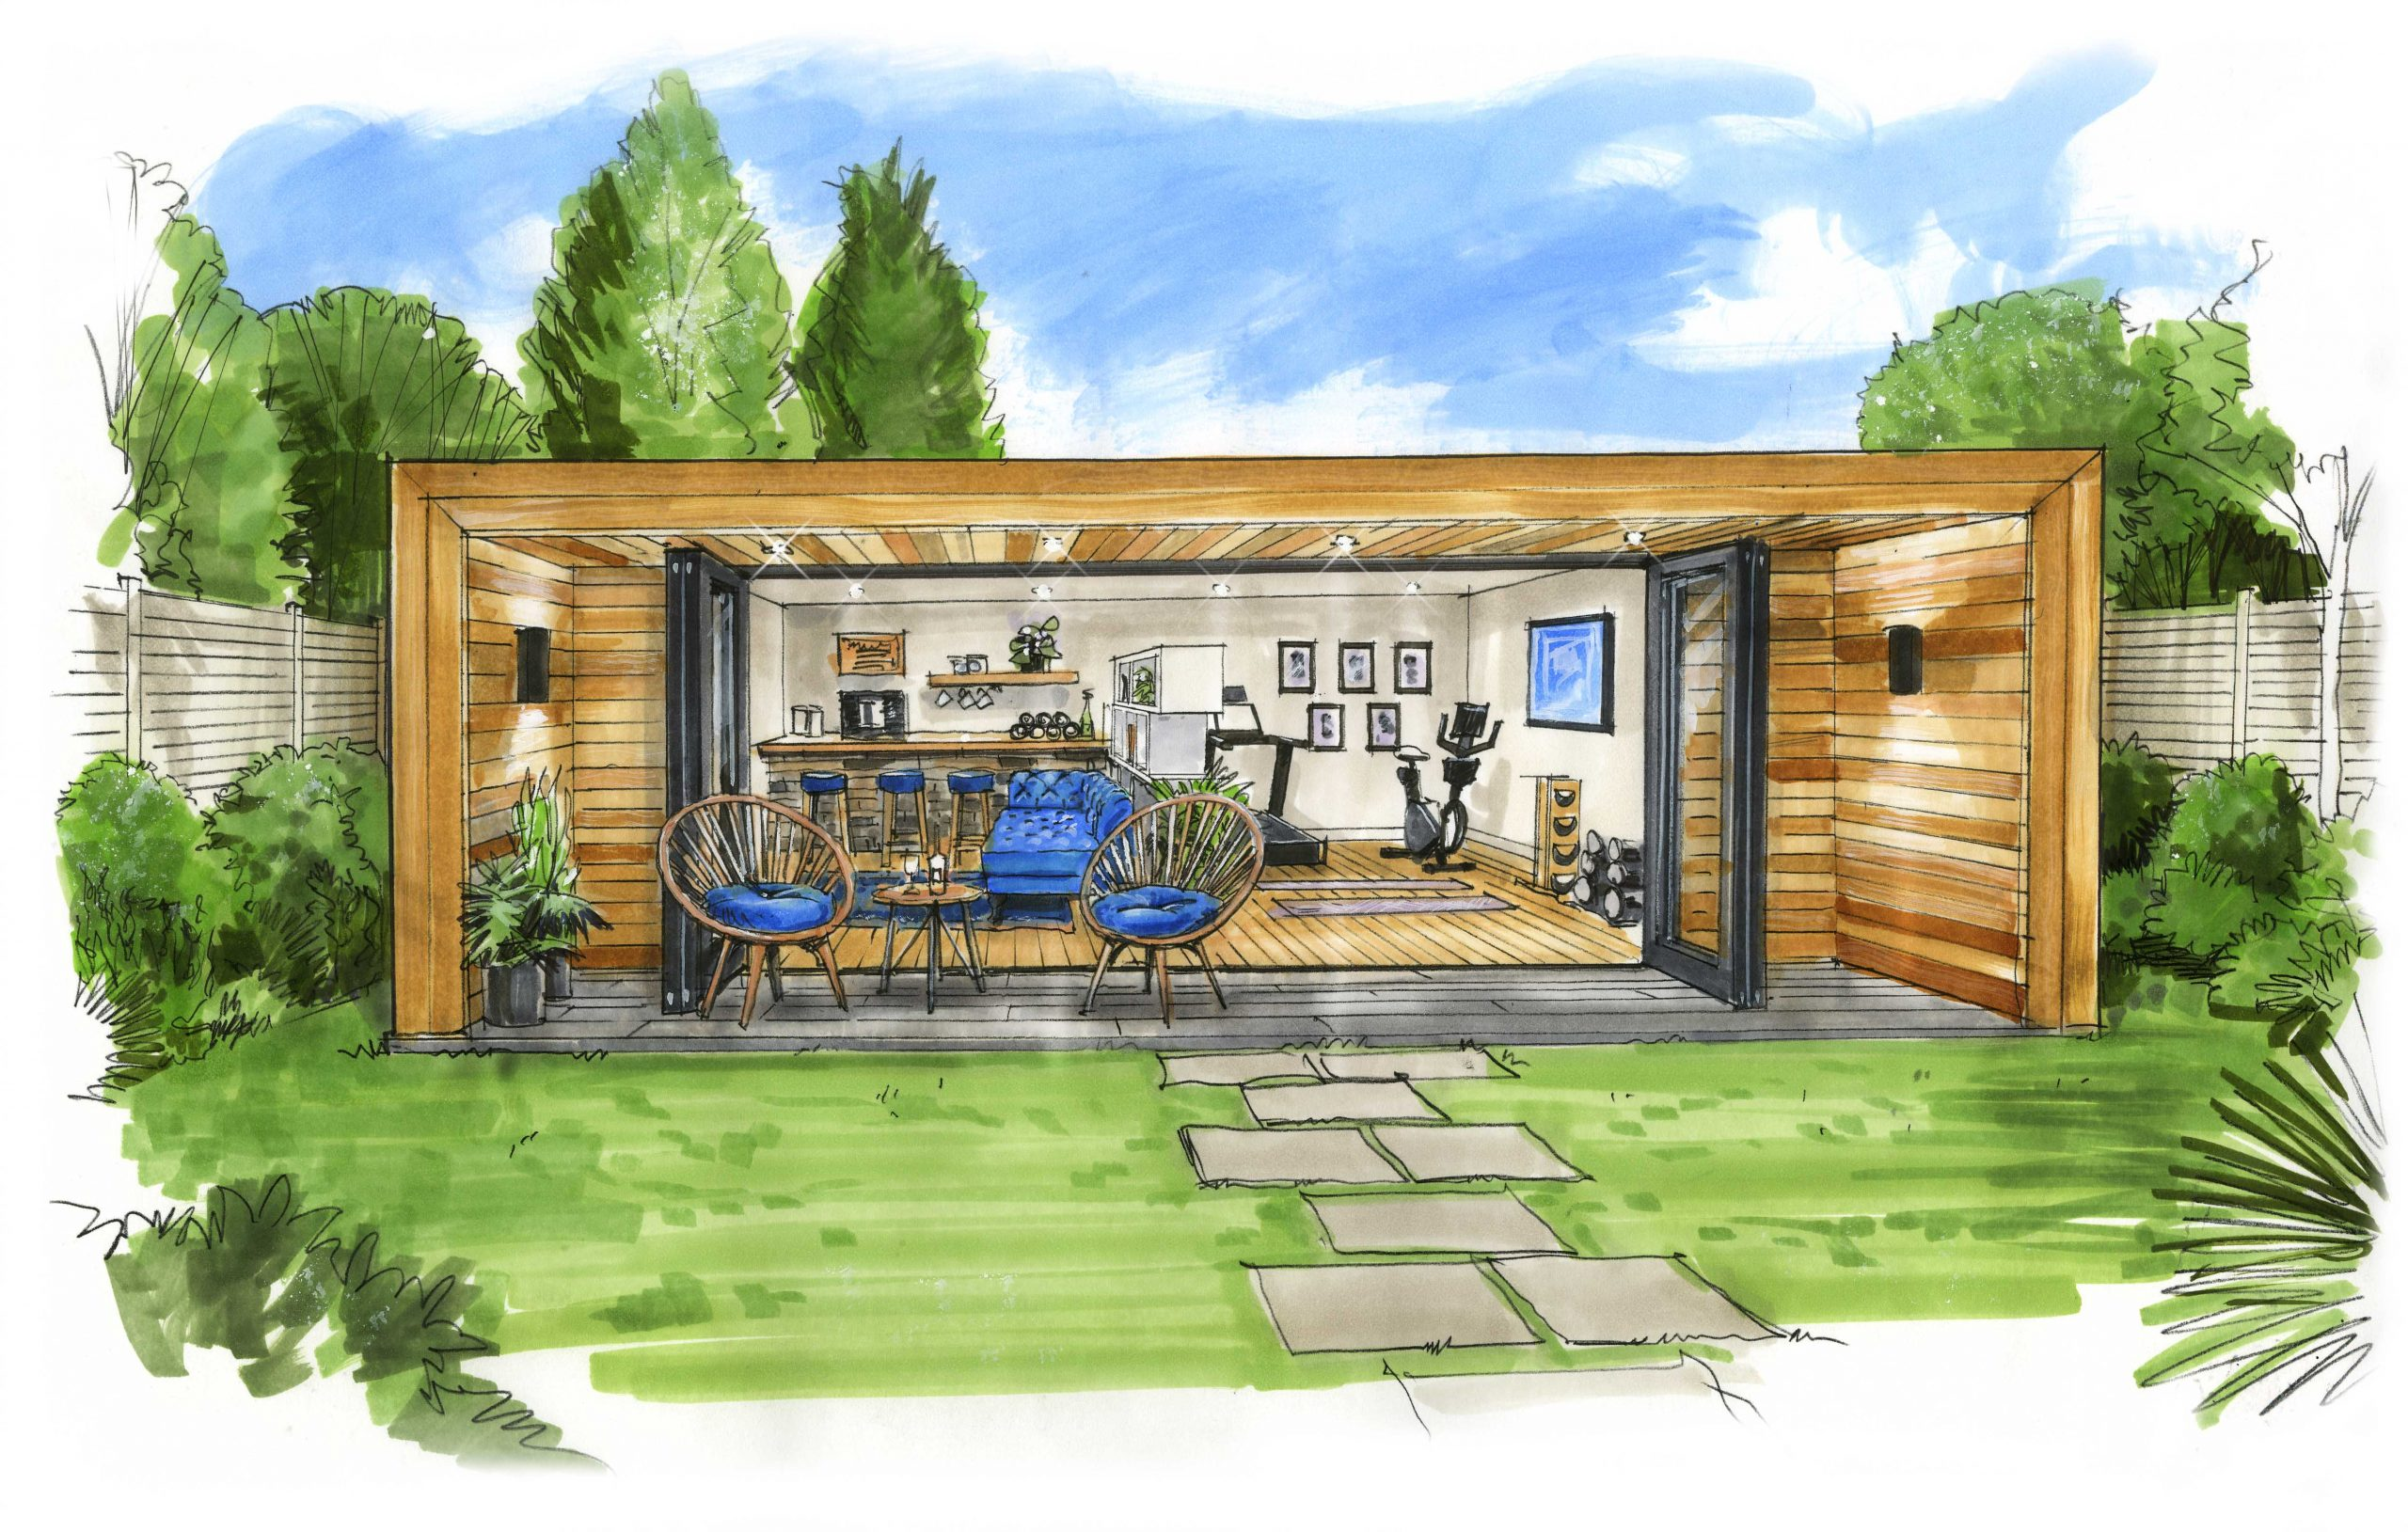 The Twilight - Garden room sketch